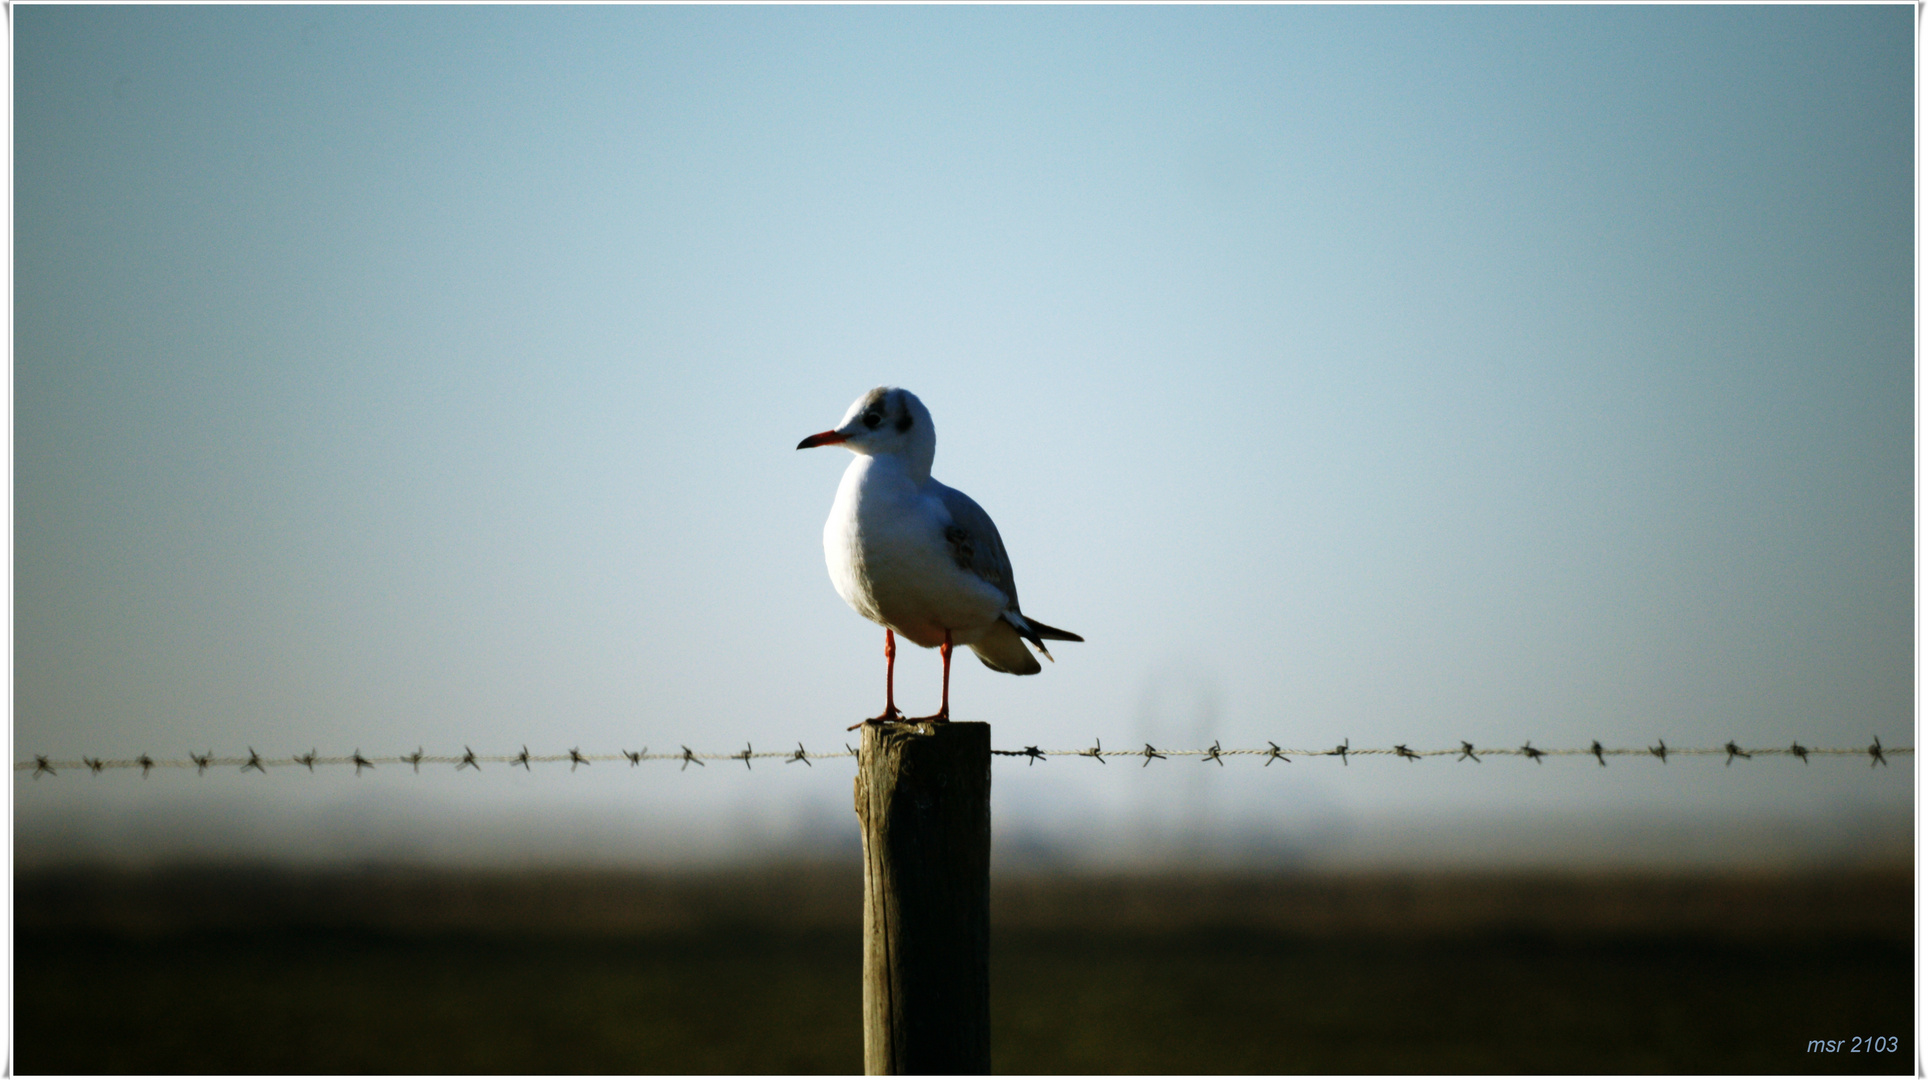 Sitting on a fence